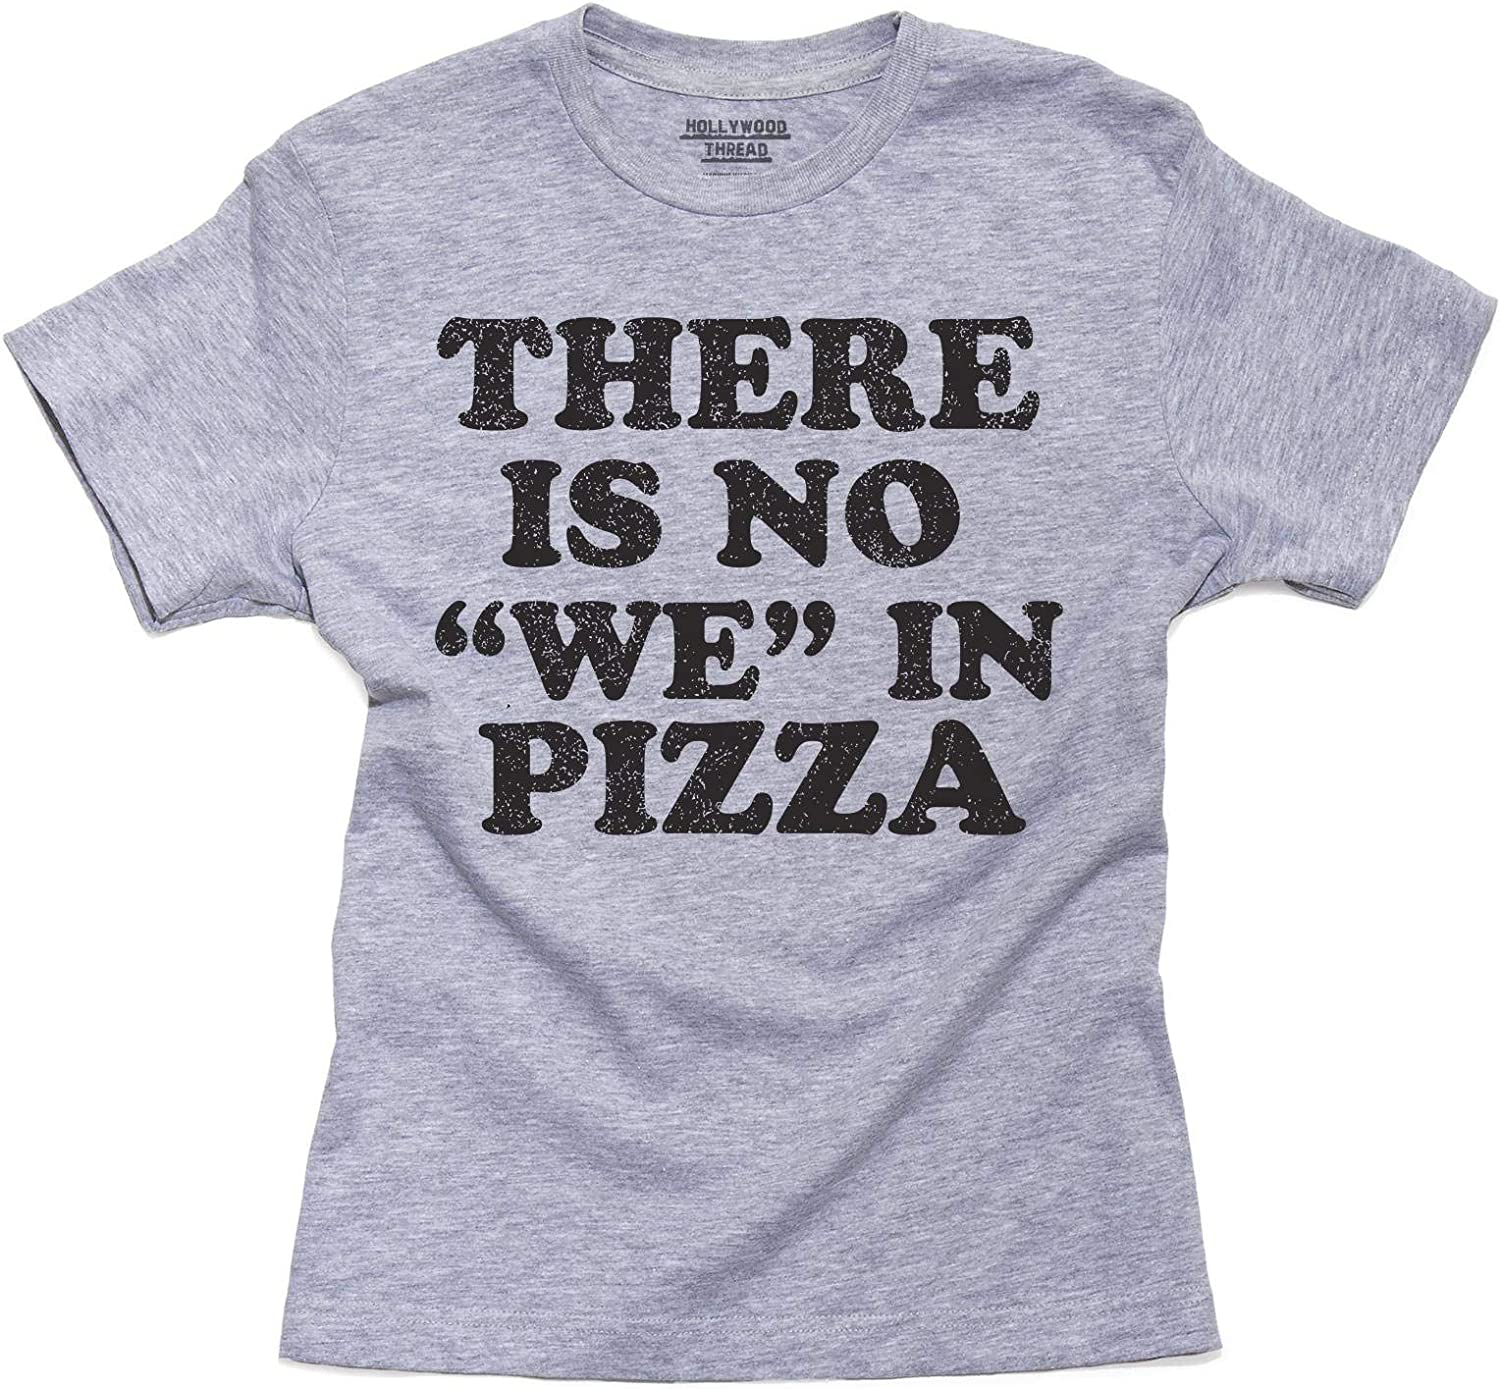 Hilarious There is No We in Pizza Youth Size T-Shirt